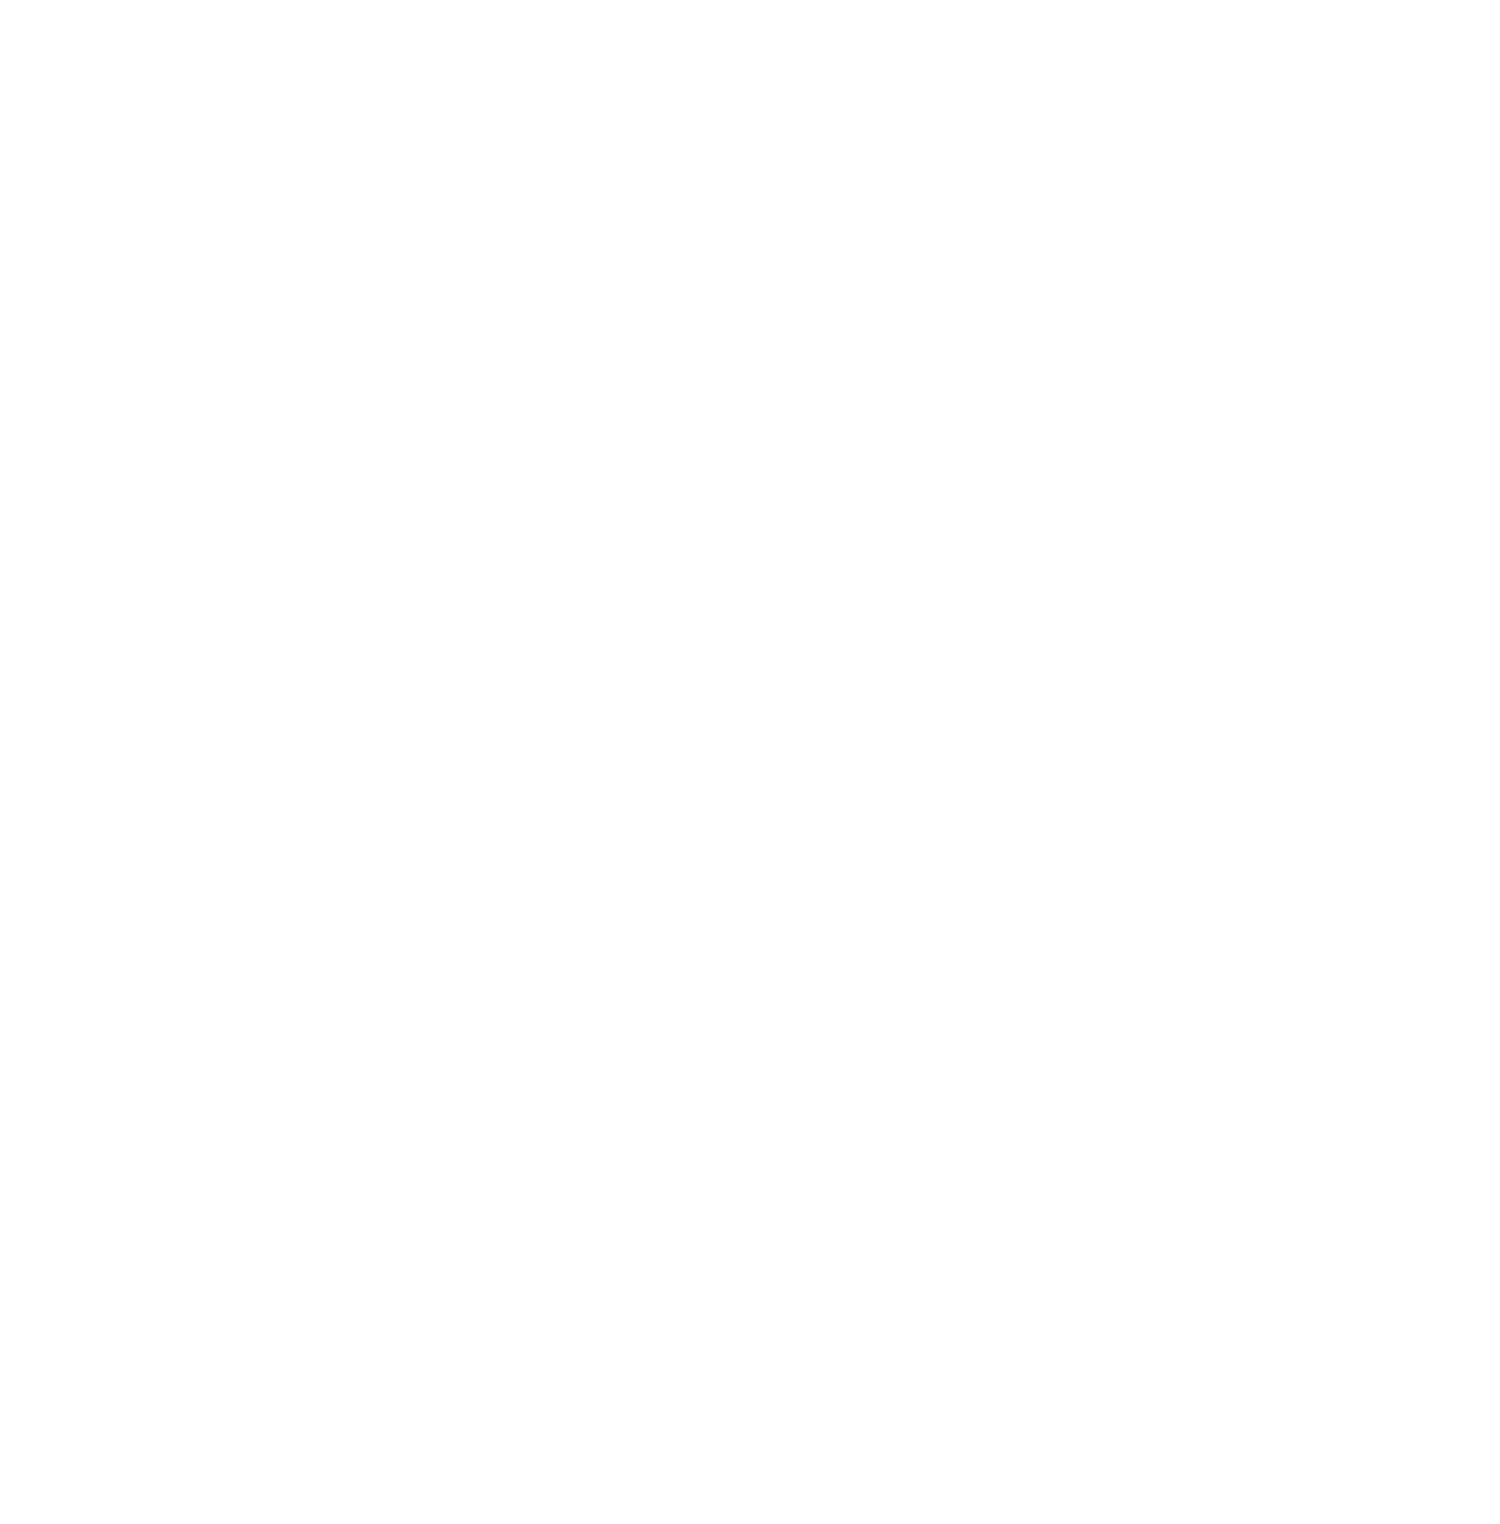 Moodiance Photobooth & Event Co